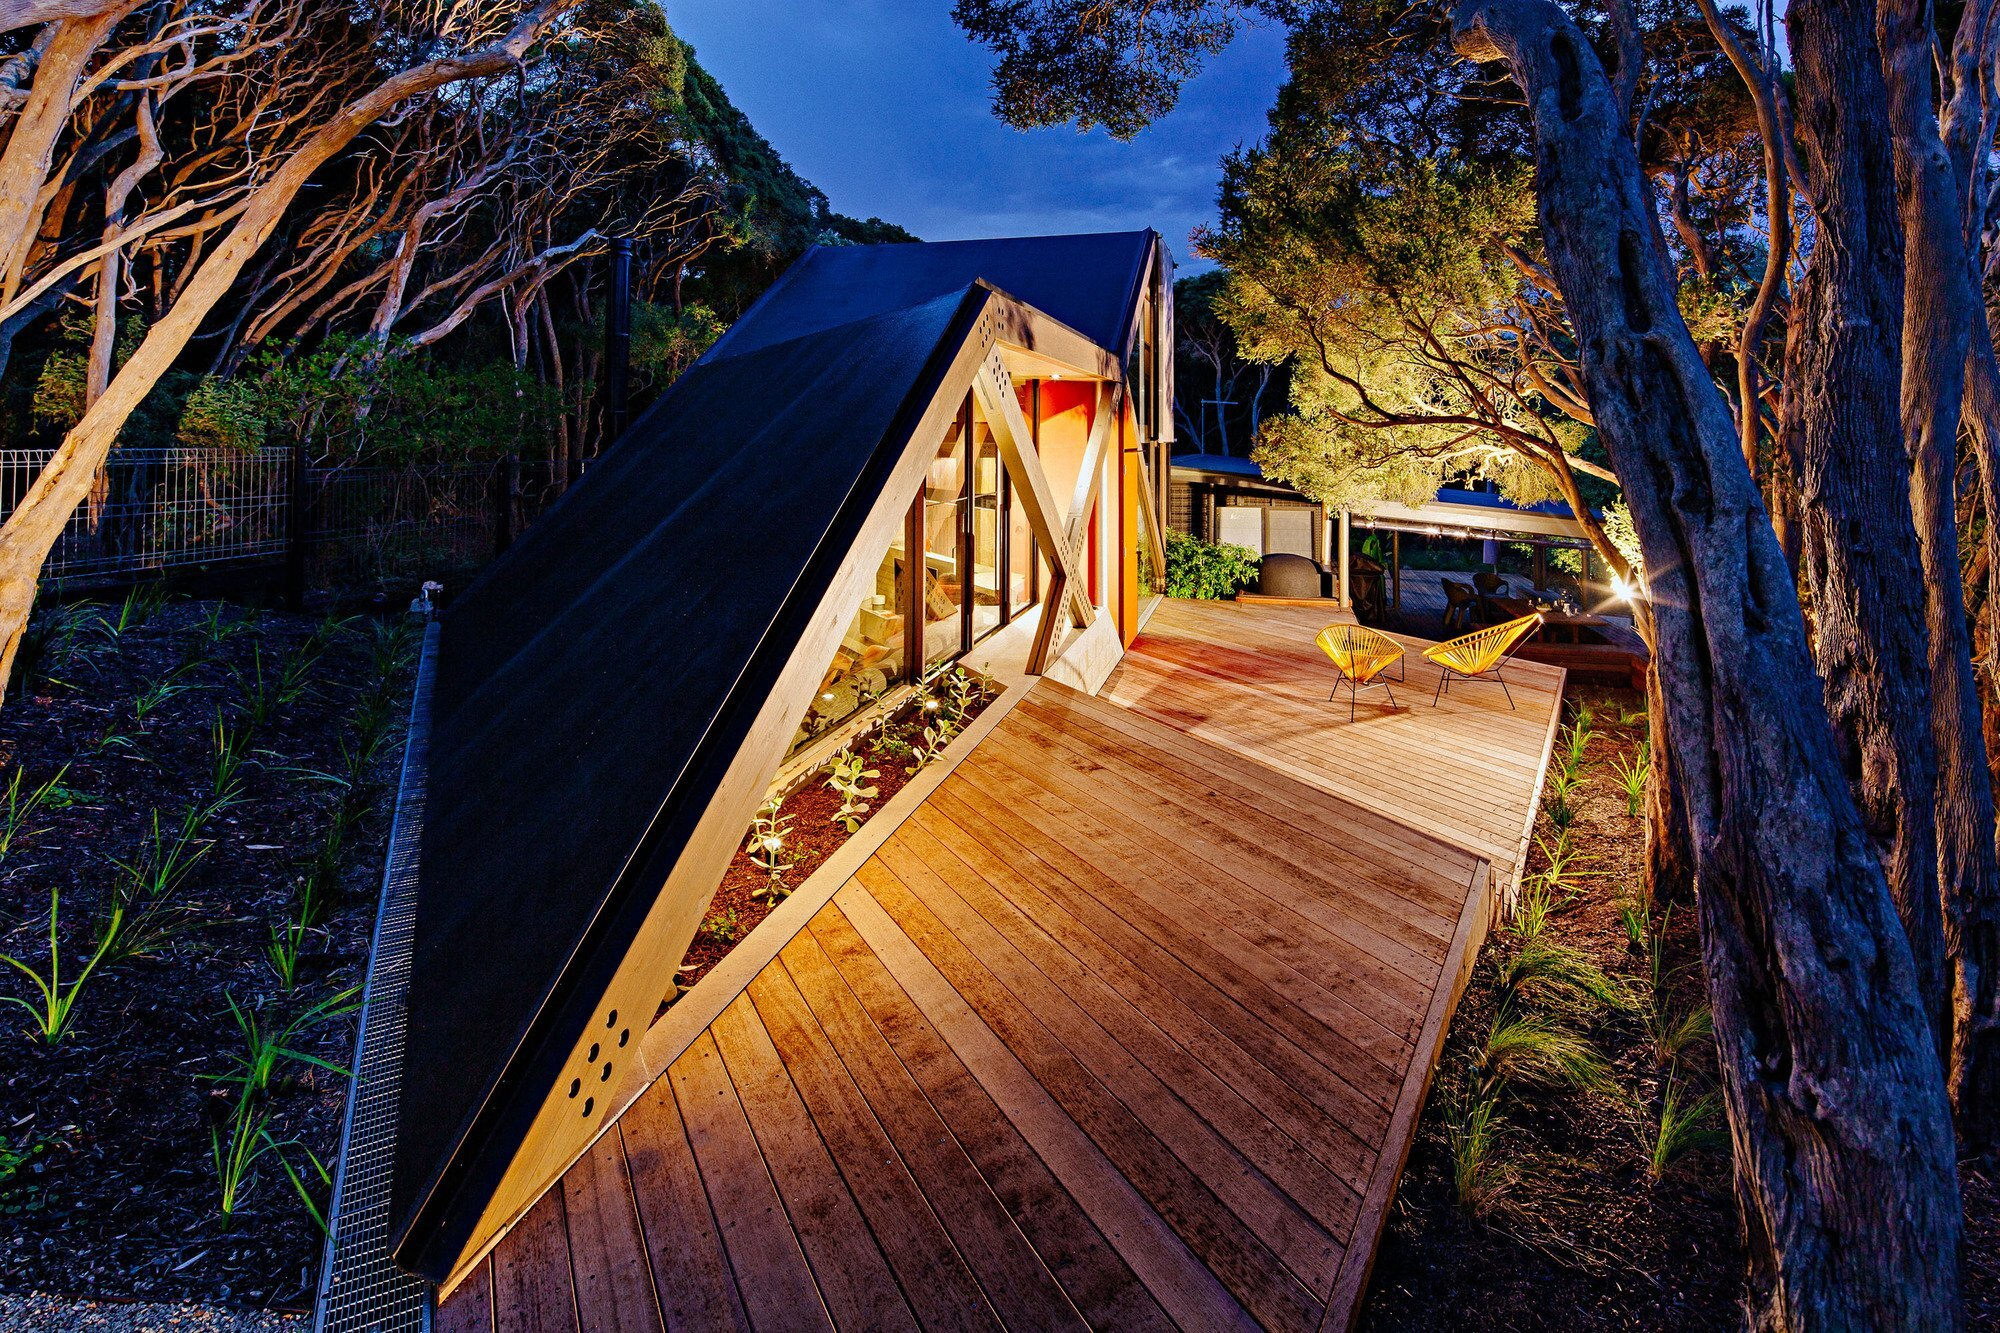 Cabin 2 - Small House - Maddison Architects - Australia - Exterior - Humble Homes